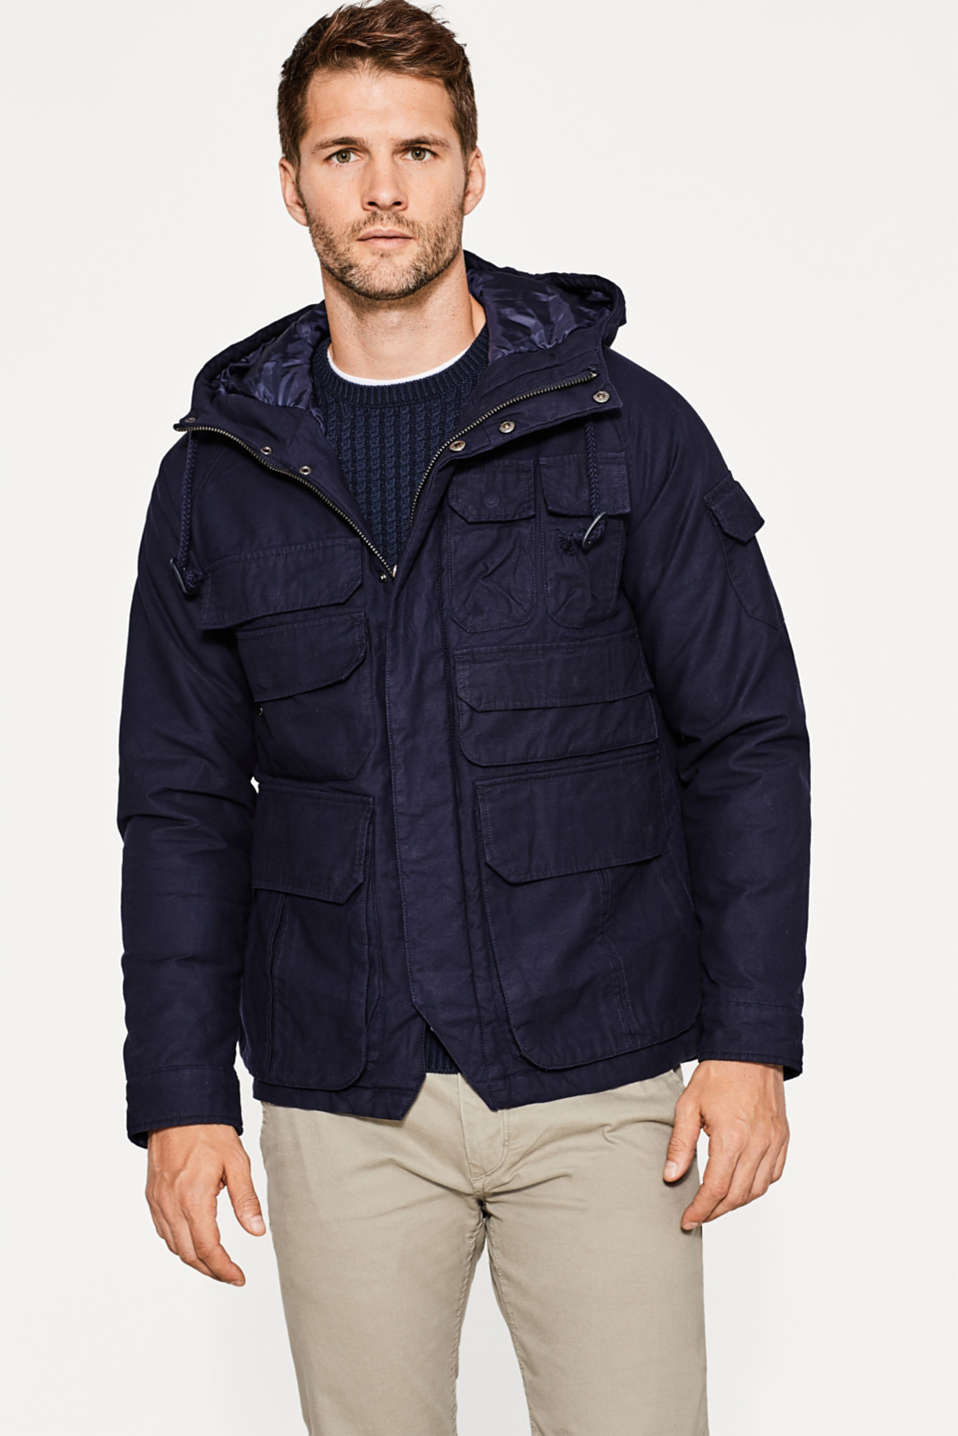 Esprit - Light jacket made of pure cotton